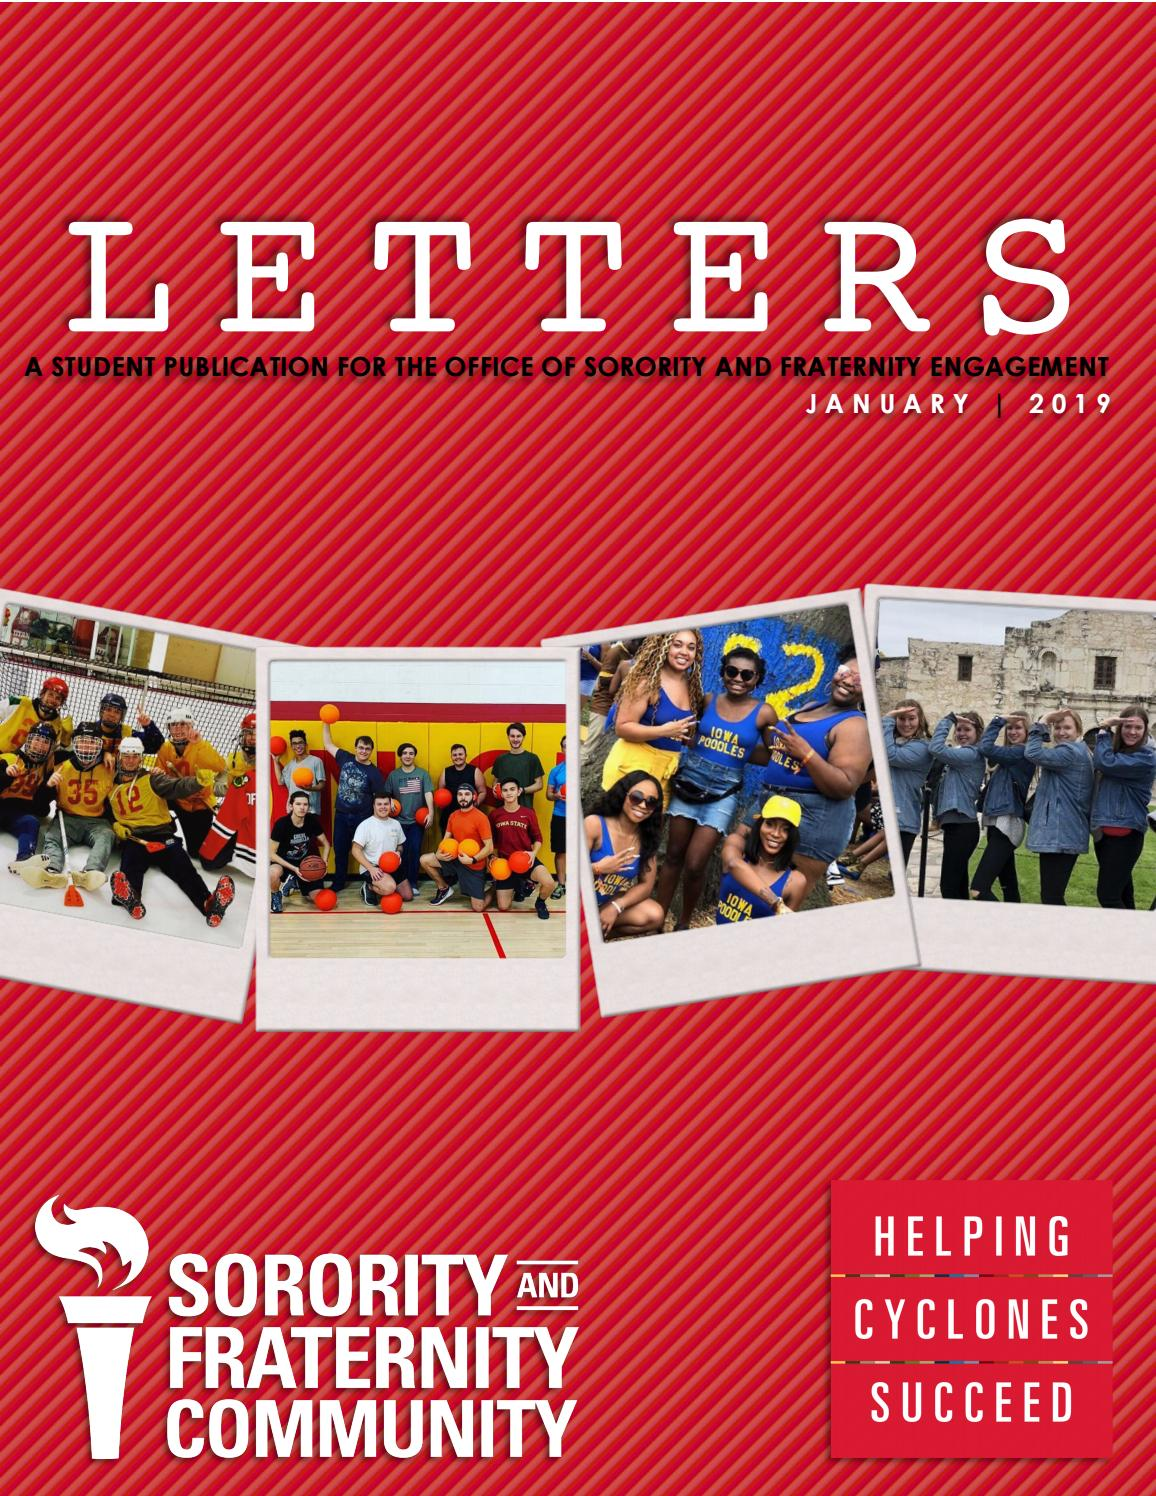 LETTERS January 2019 by Iowa State University Office of